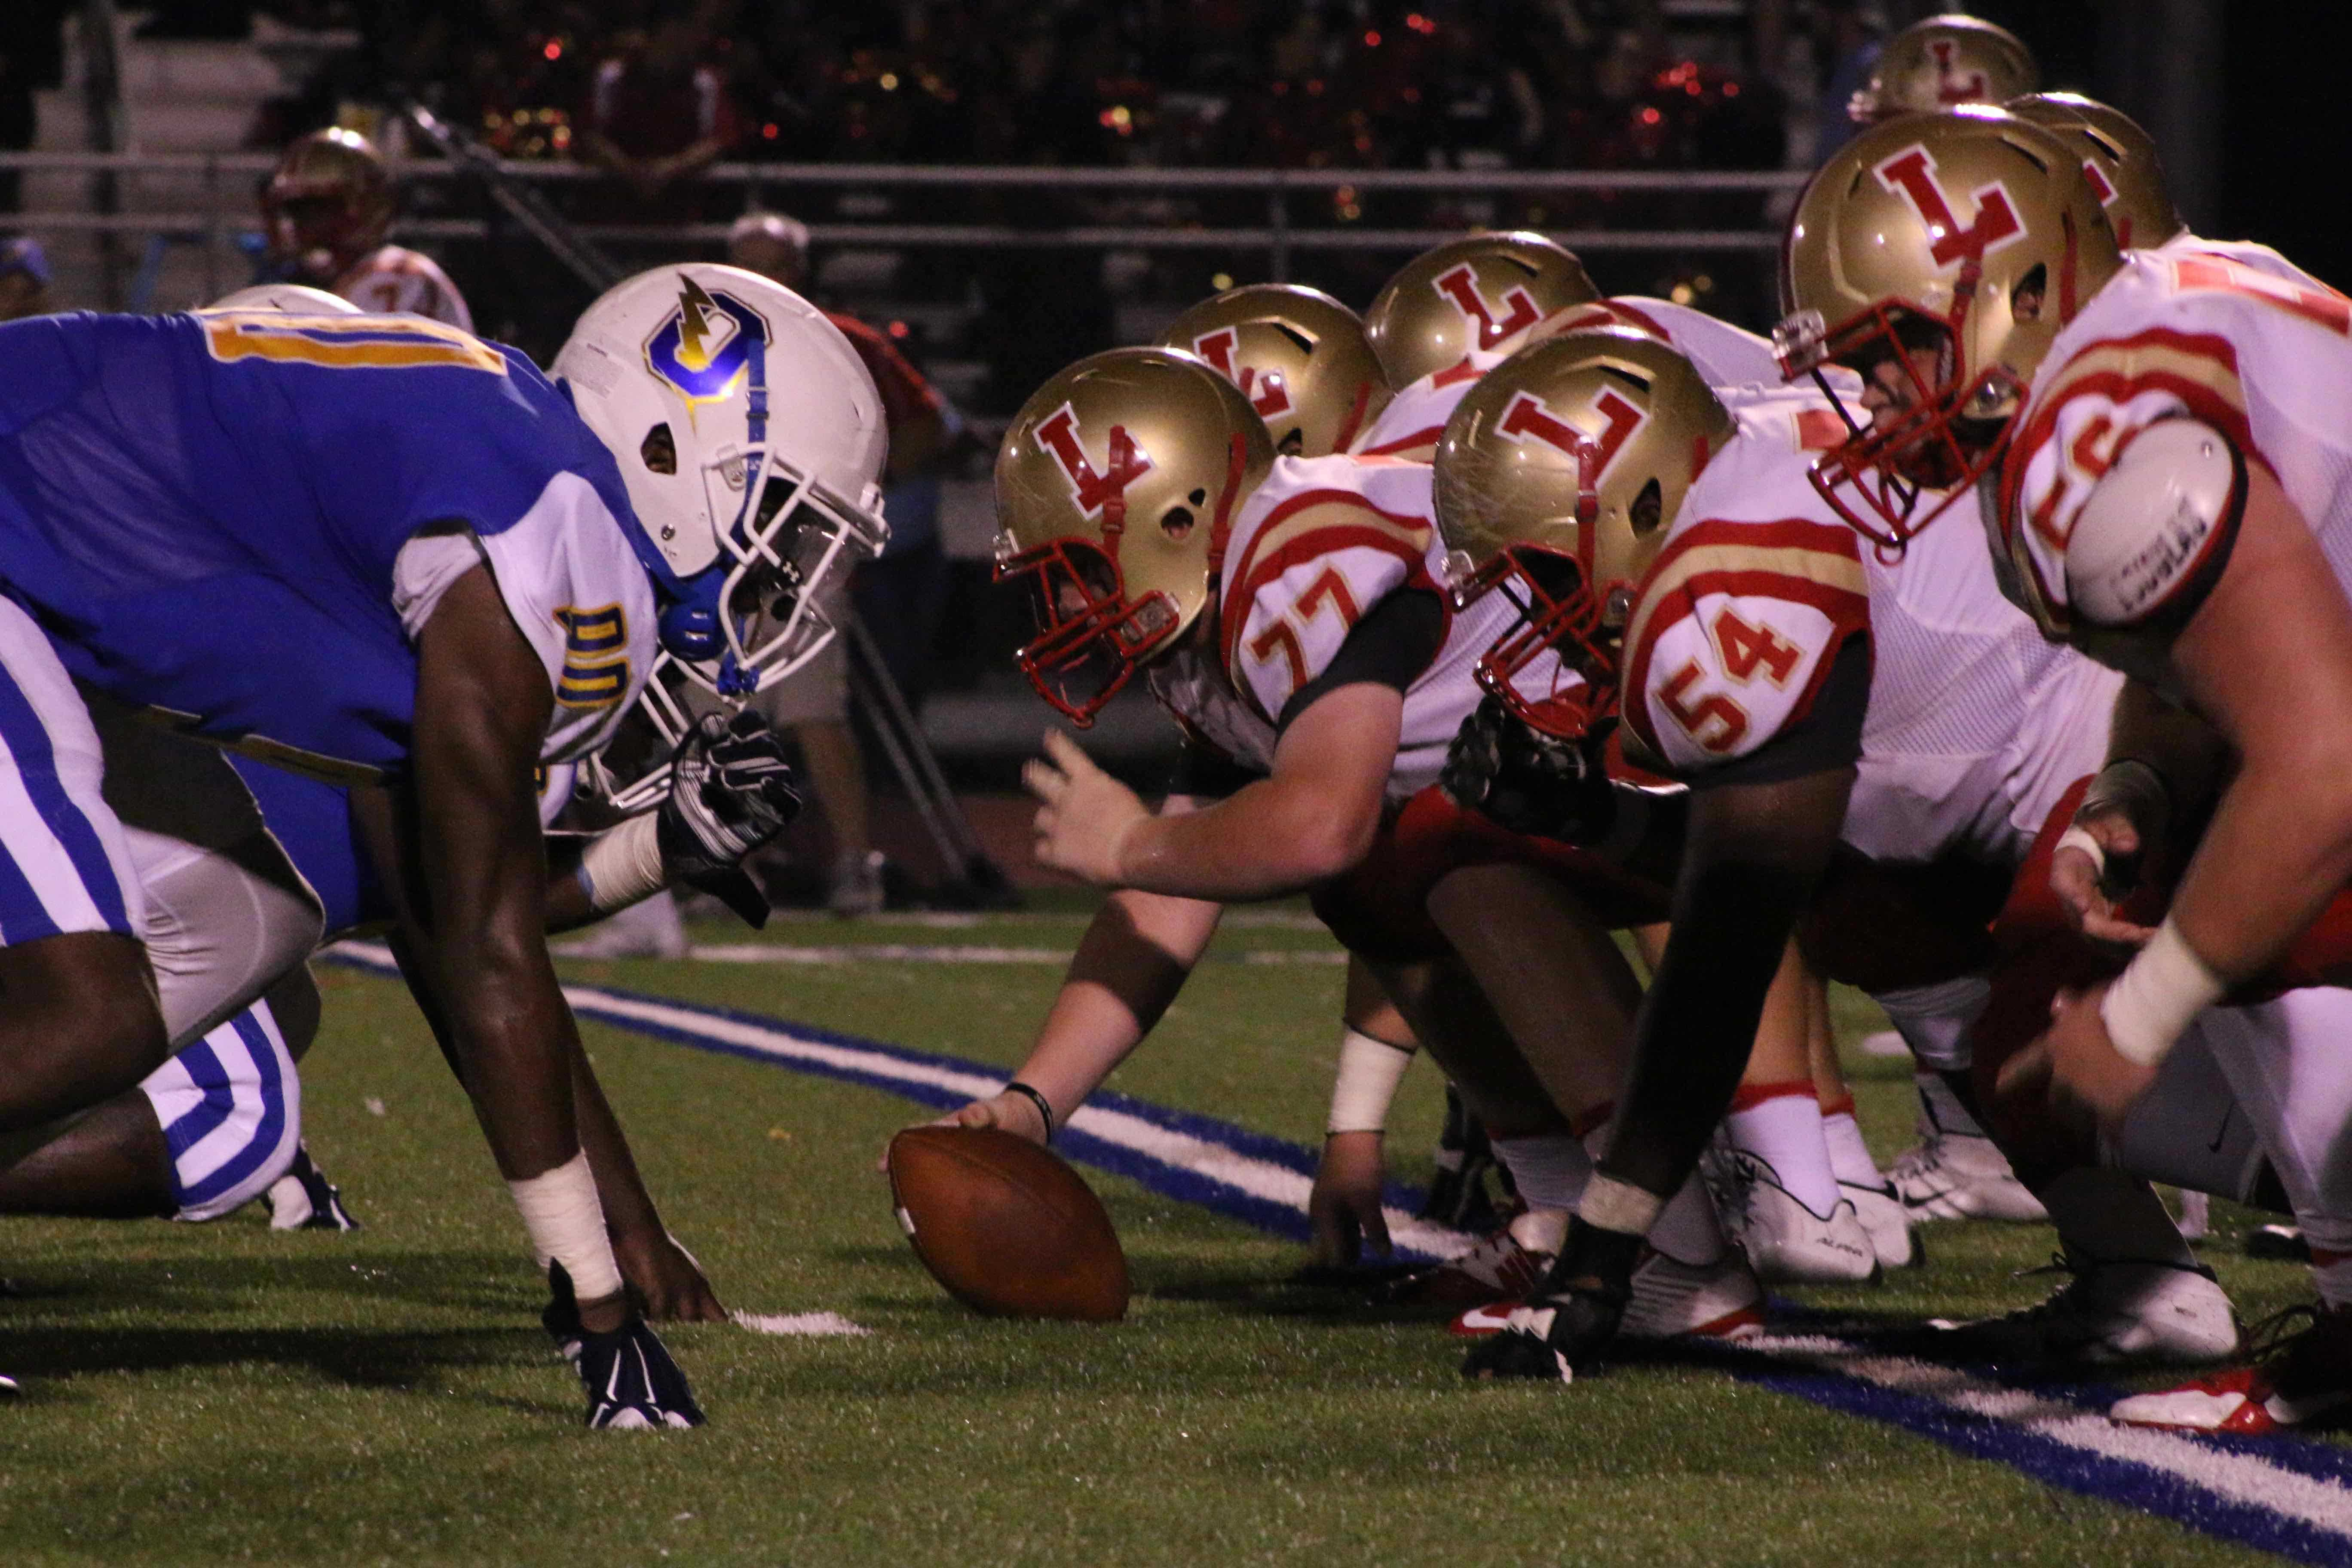 The Charger offensive line lines up across from Lafayette's offensive line.